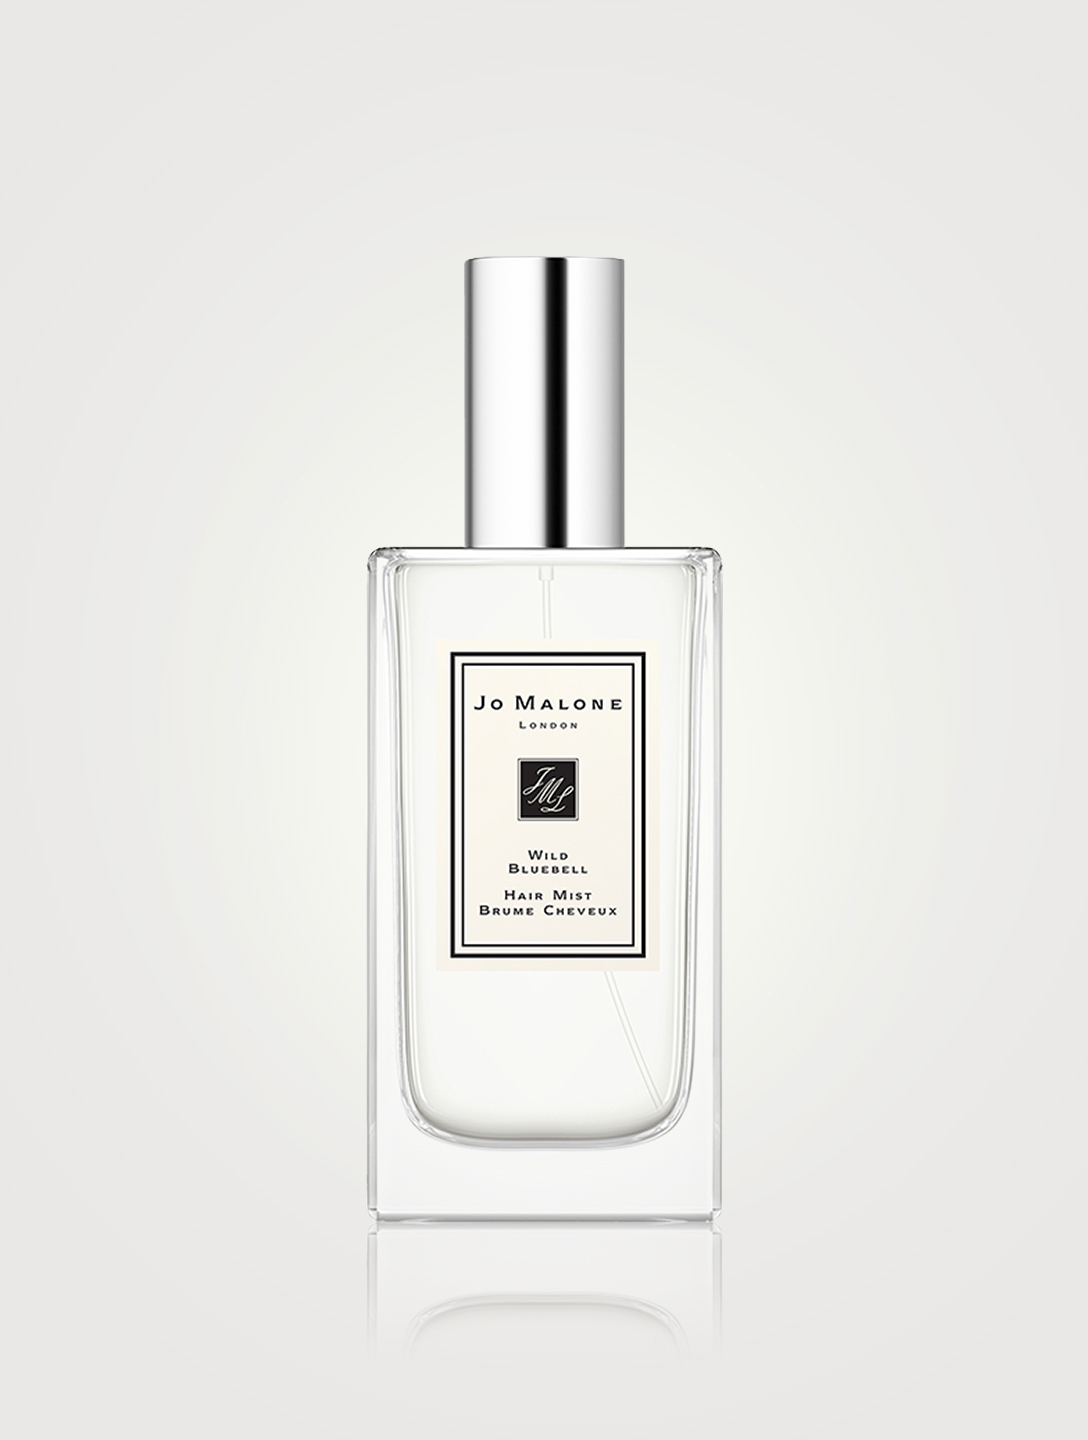 JO MALONE LONDON Brume cheveux Wild Bluebell Beauté